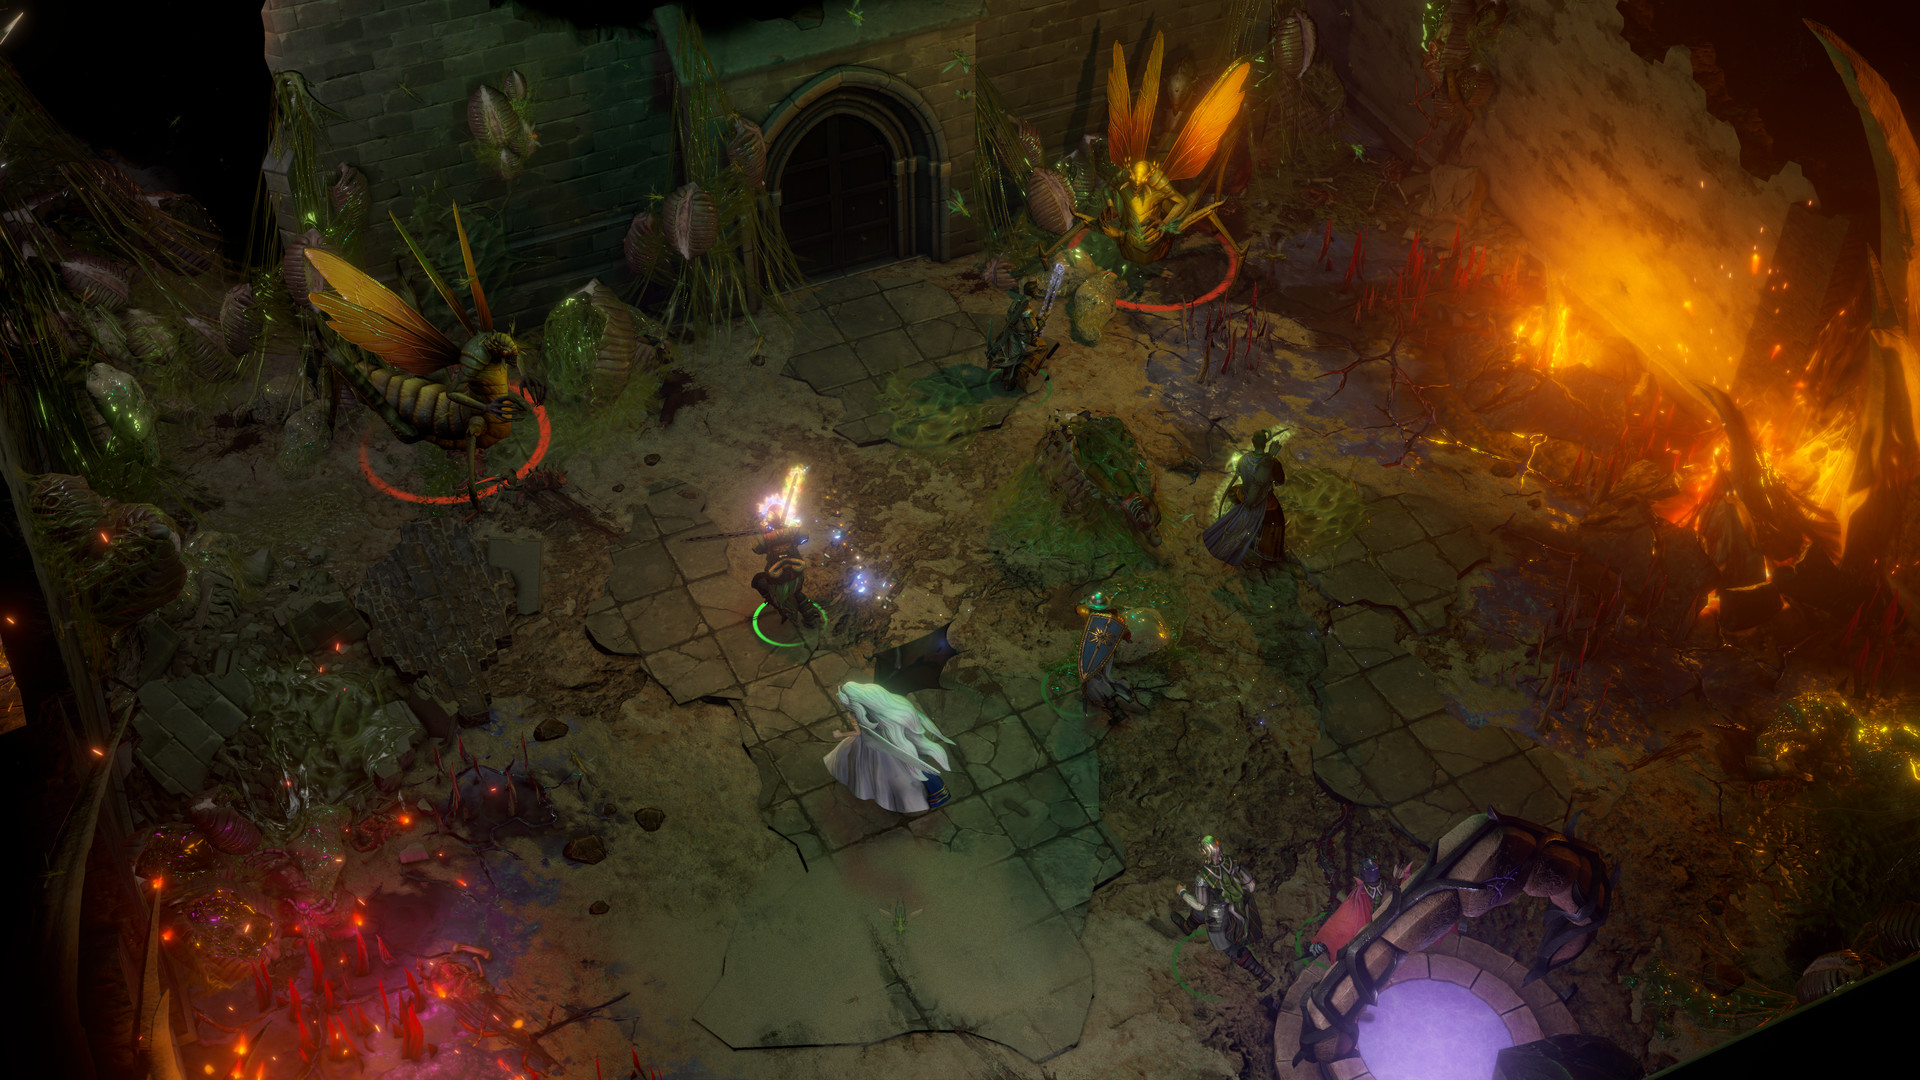 pathfinder-wrath-of-the-righteous-mythic-edition-pc-screenshot-3